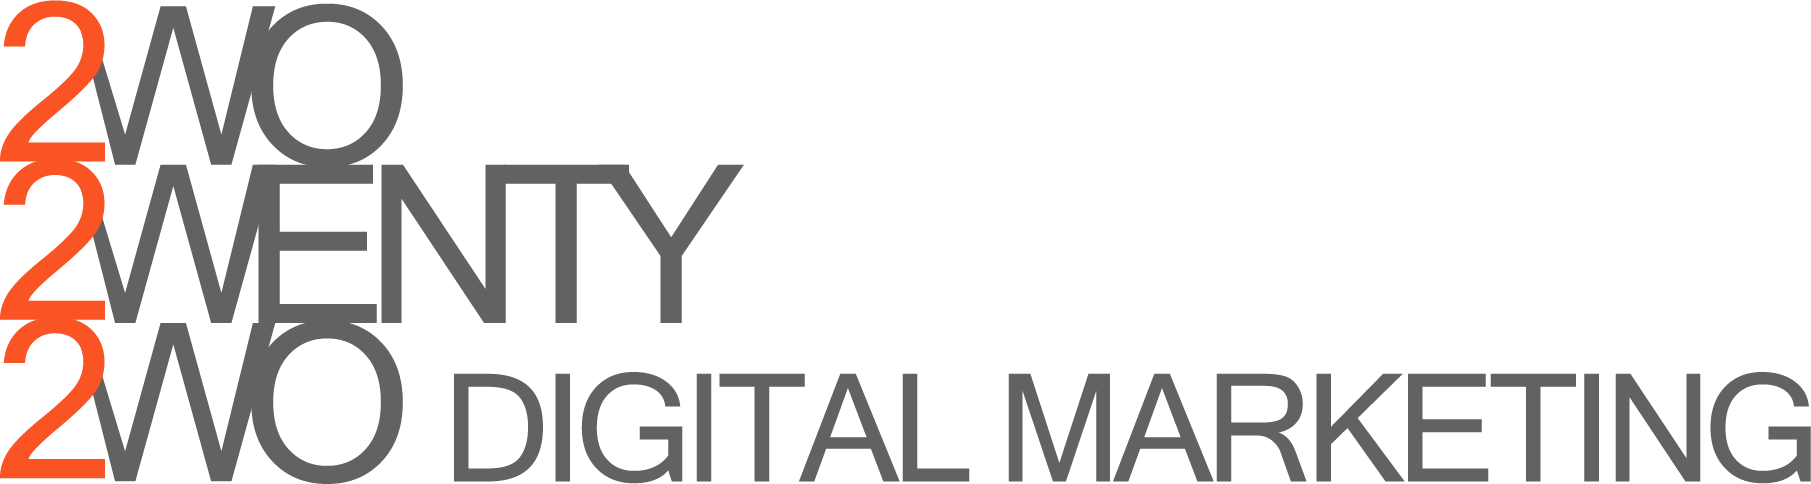 222 Digital Marketing Agency Chicago - Profit Generating Online Marketing Leads